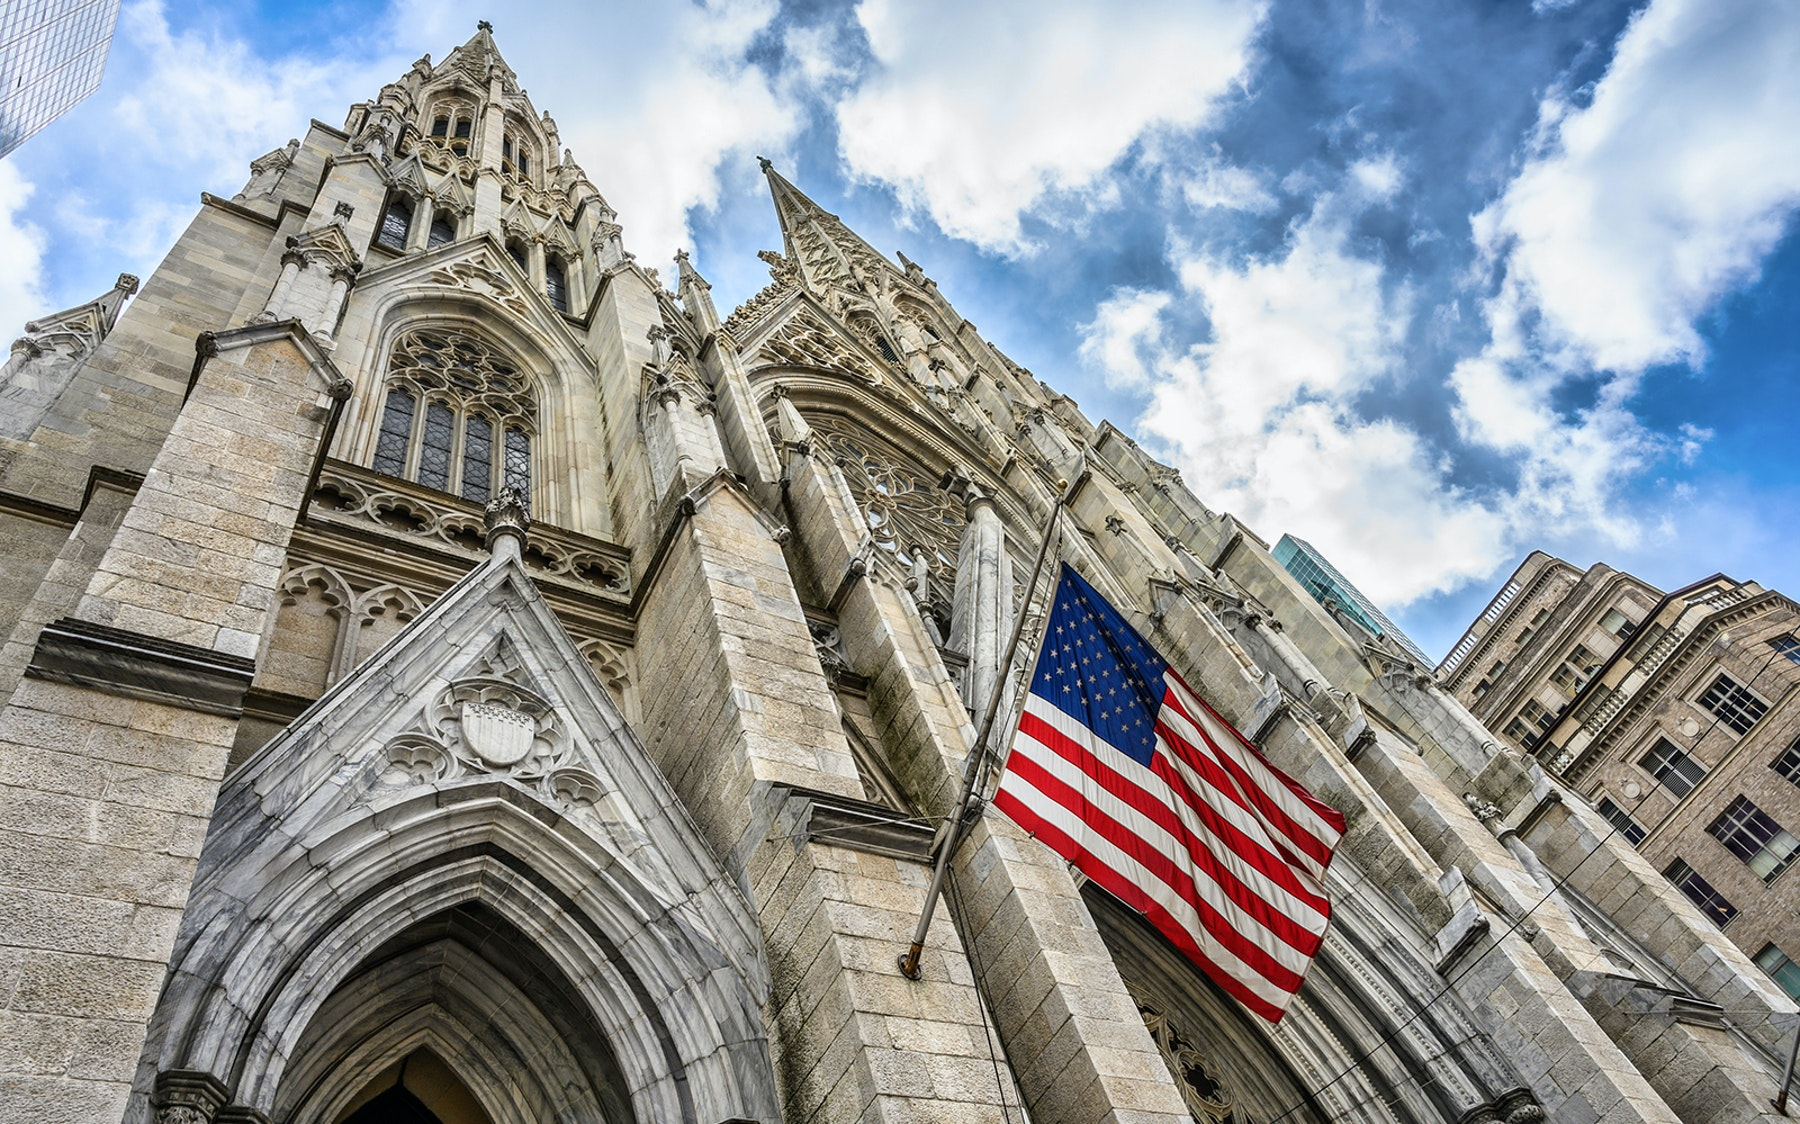 St.Patrick's cathedral image